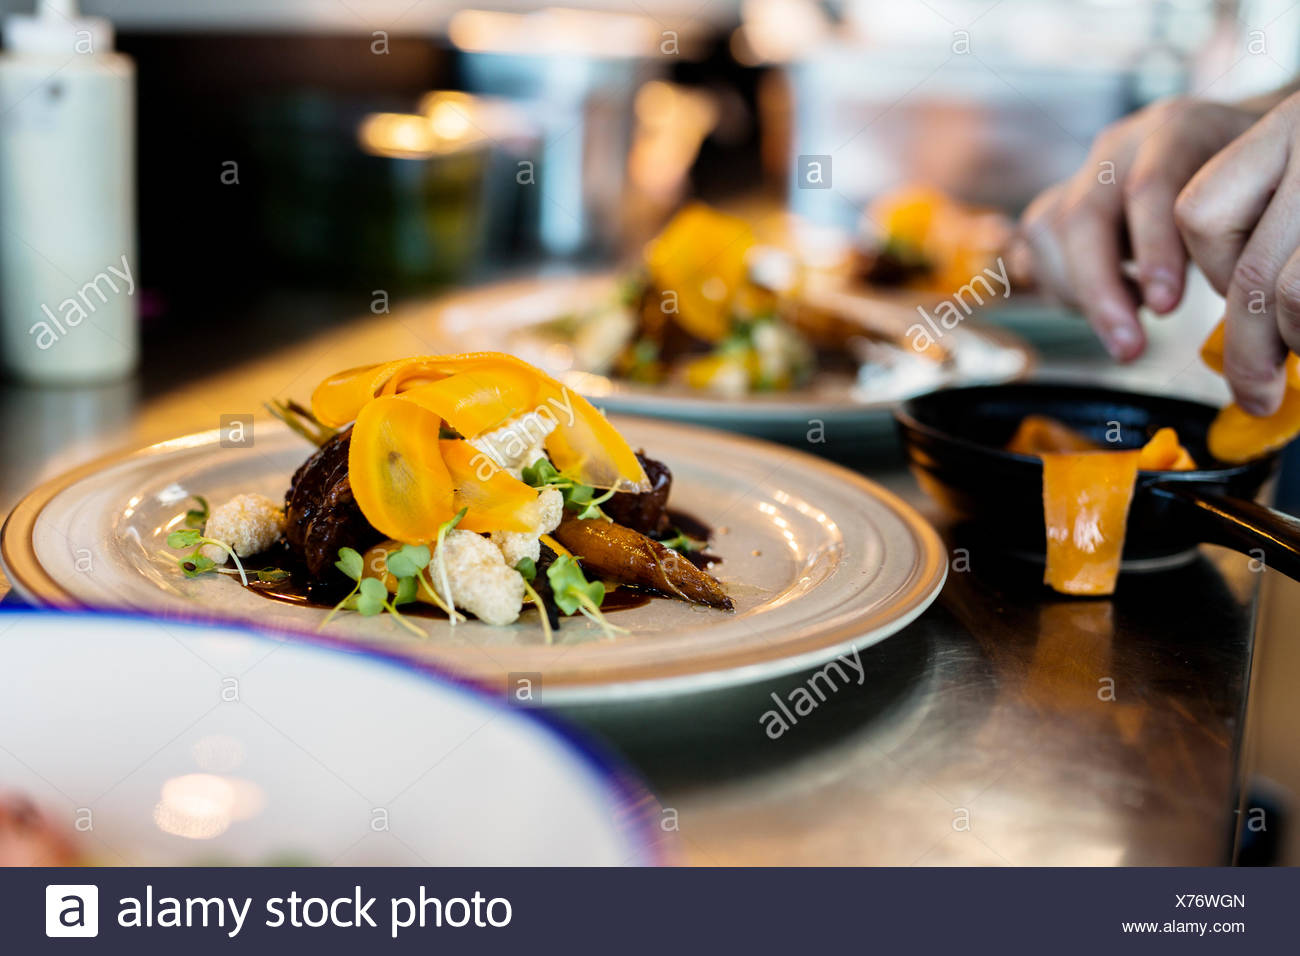 Cropped image of chef preparing dish in Sky bar restaurant - Stock Image